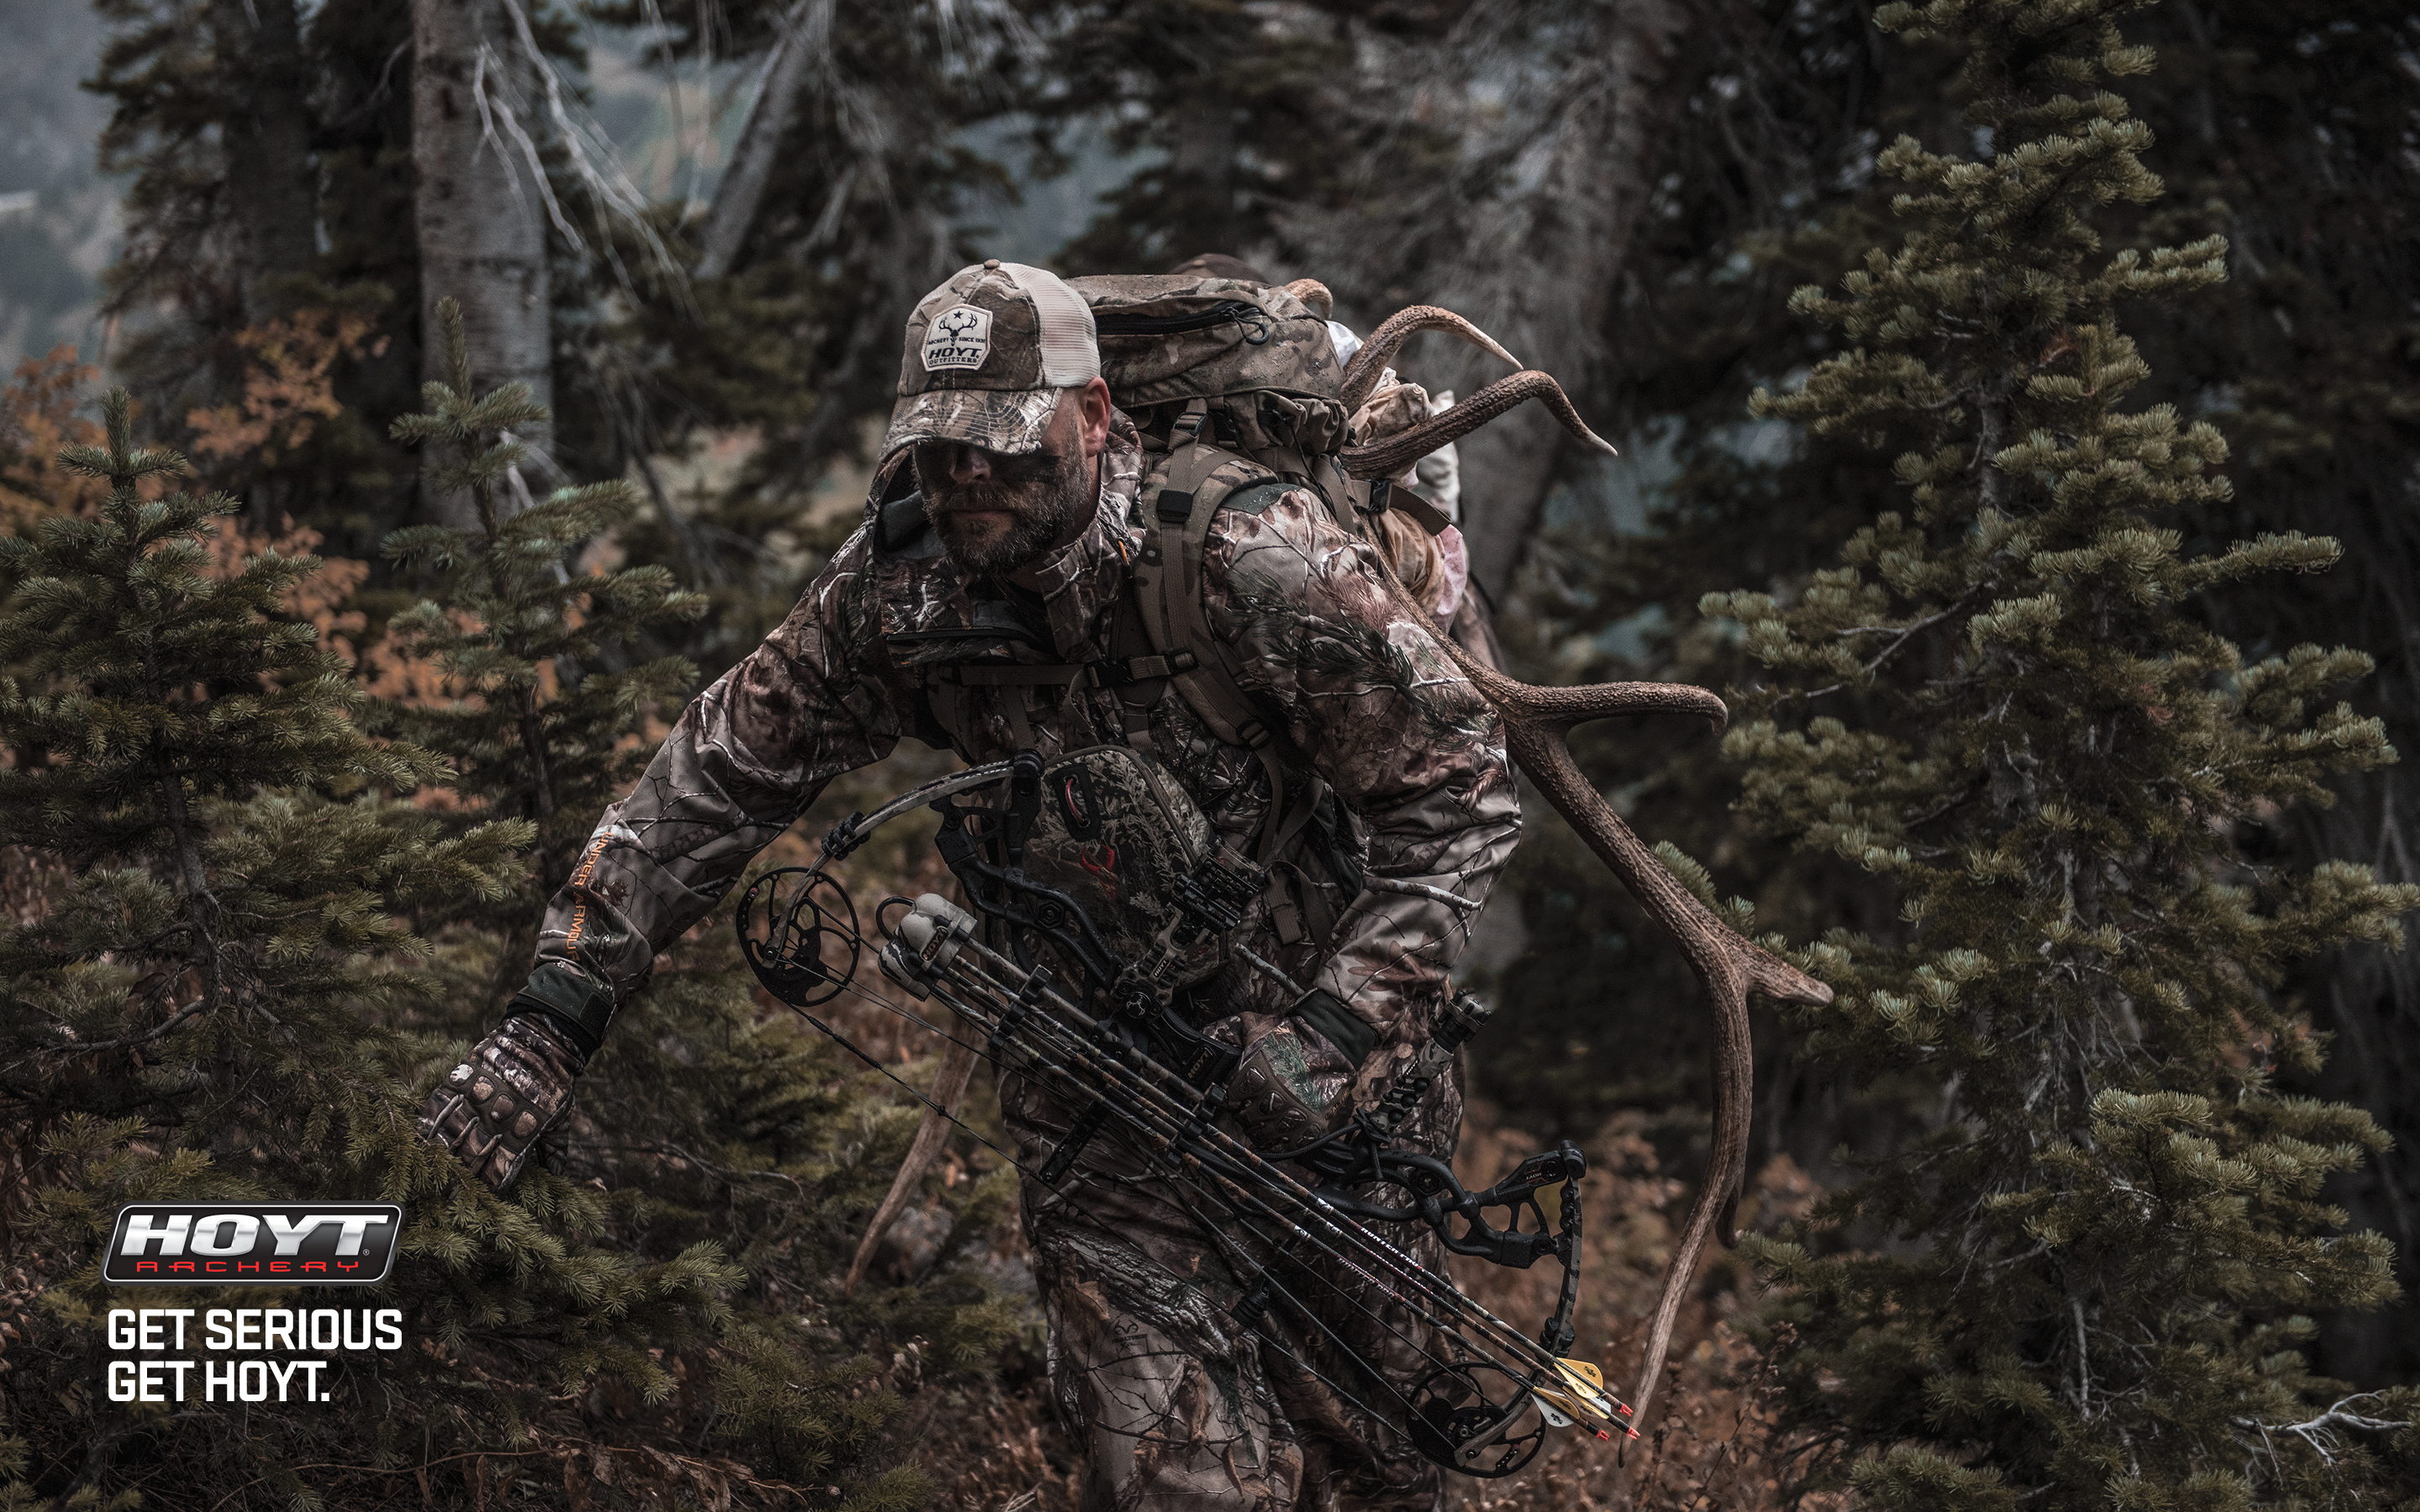 bowhunting wallpaper ignite wallpaper get serious get hoyt traditional 2880x1800